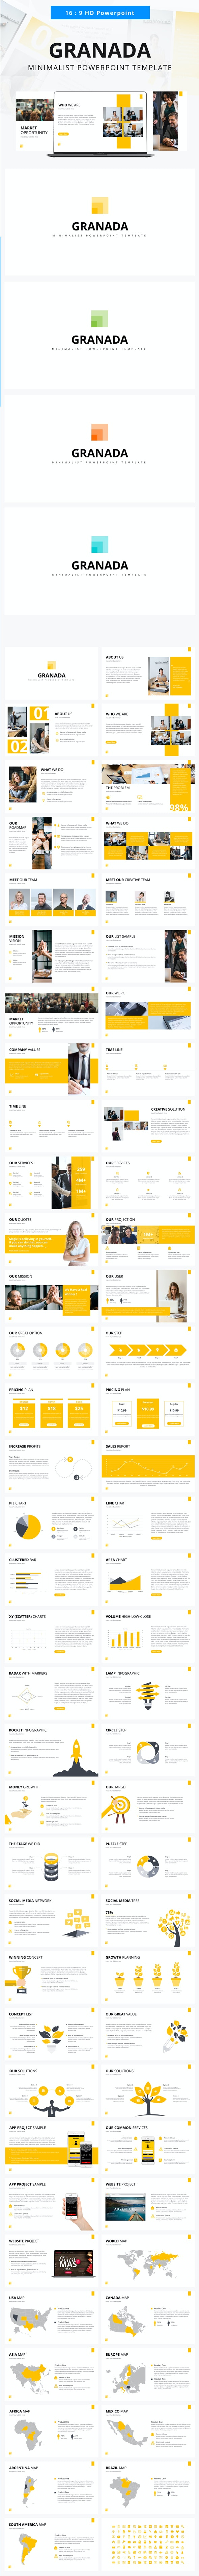 Granada Business Powerpoint Template - Business Keynote Templates